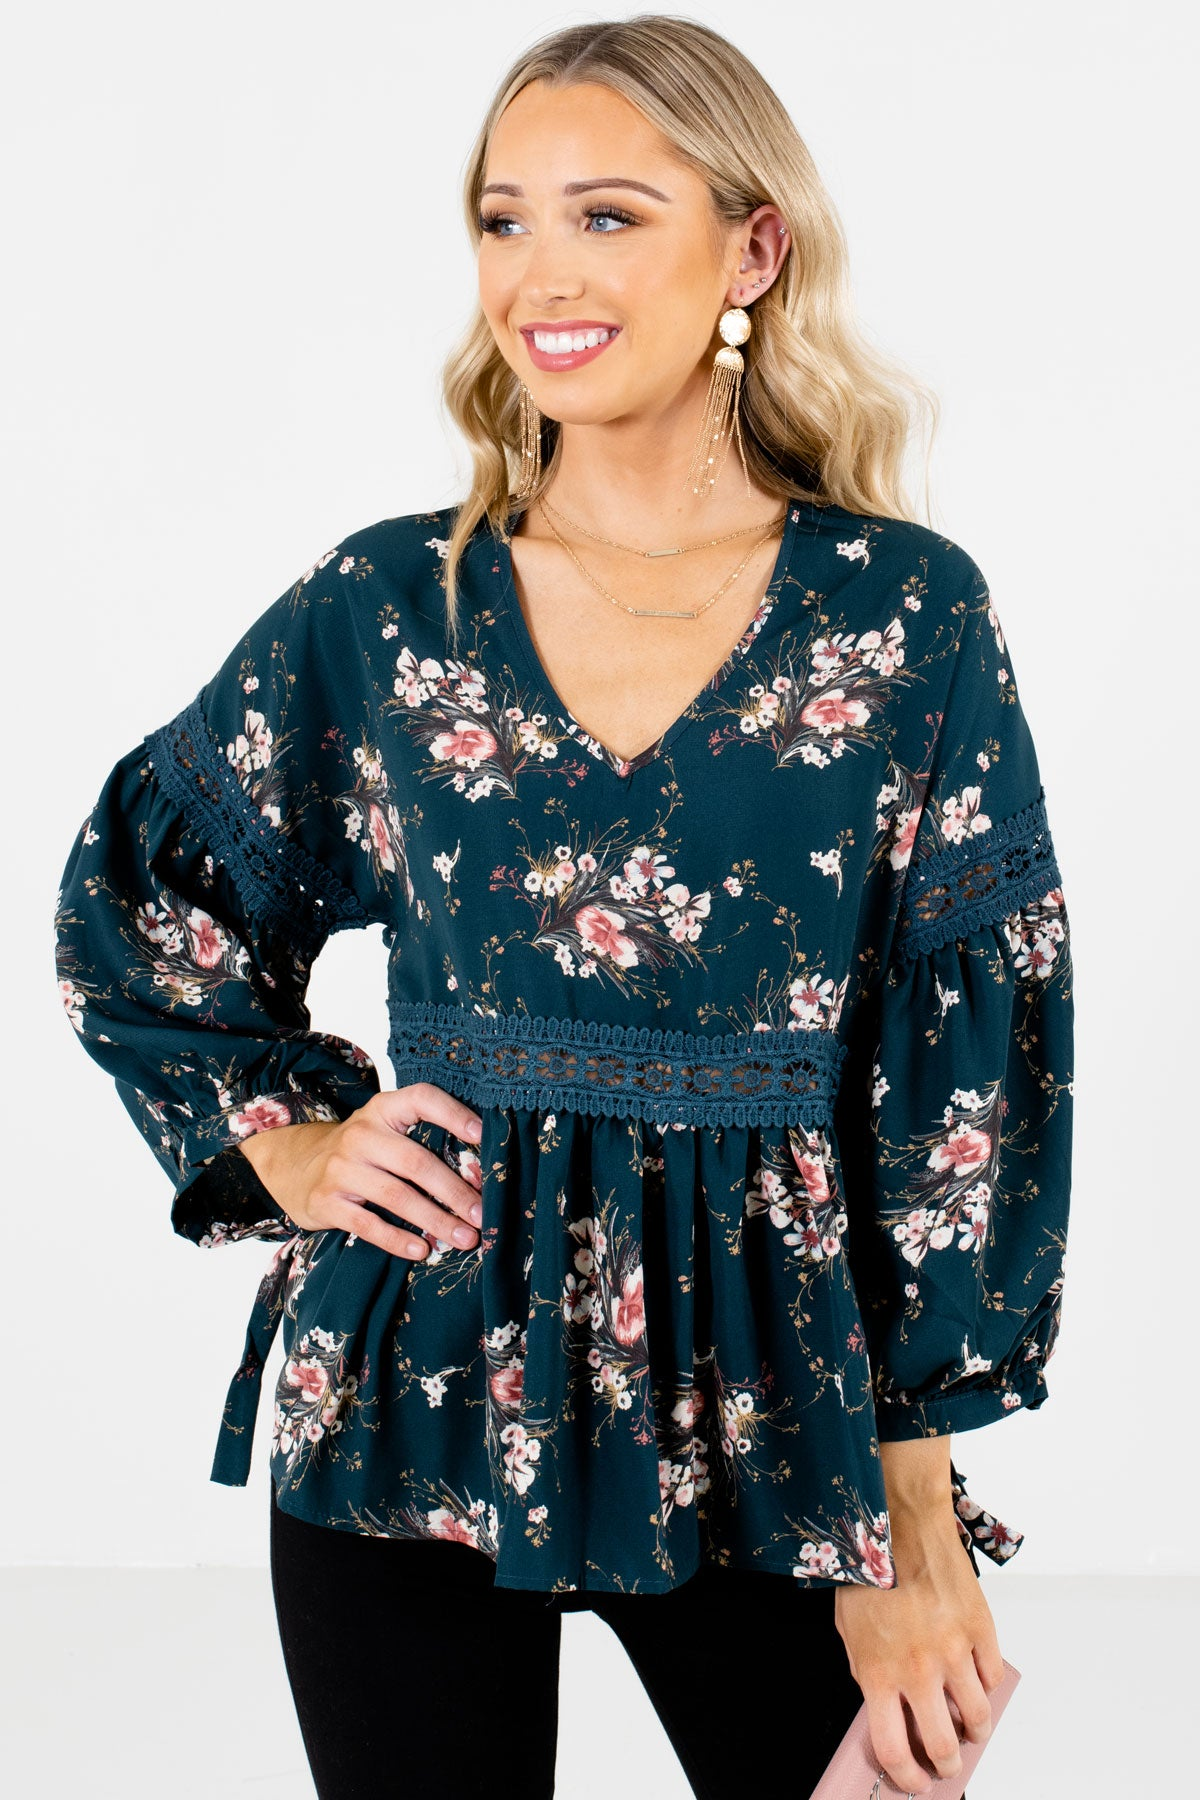 Teal Blue Multicolored Floral Pattern Boutique Blouses for Women